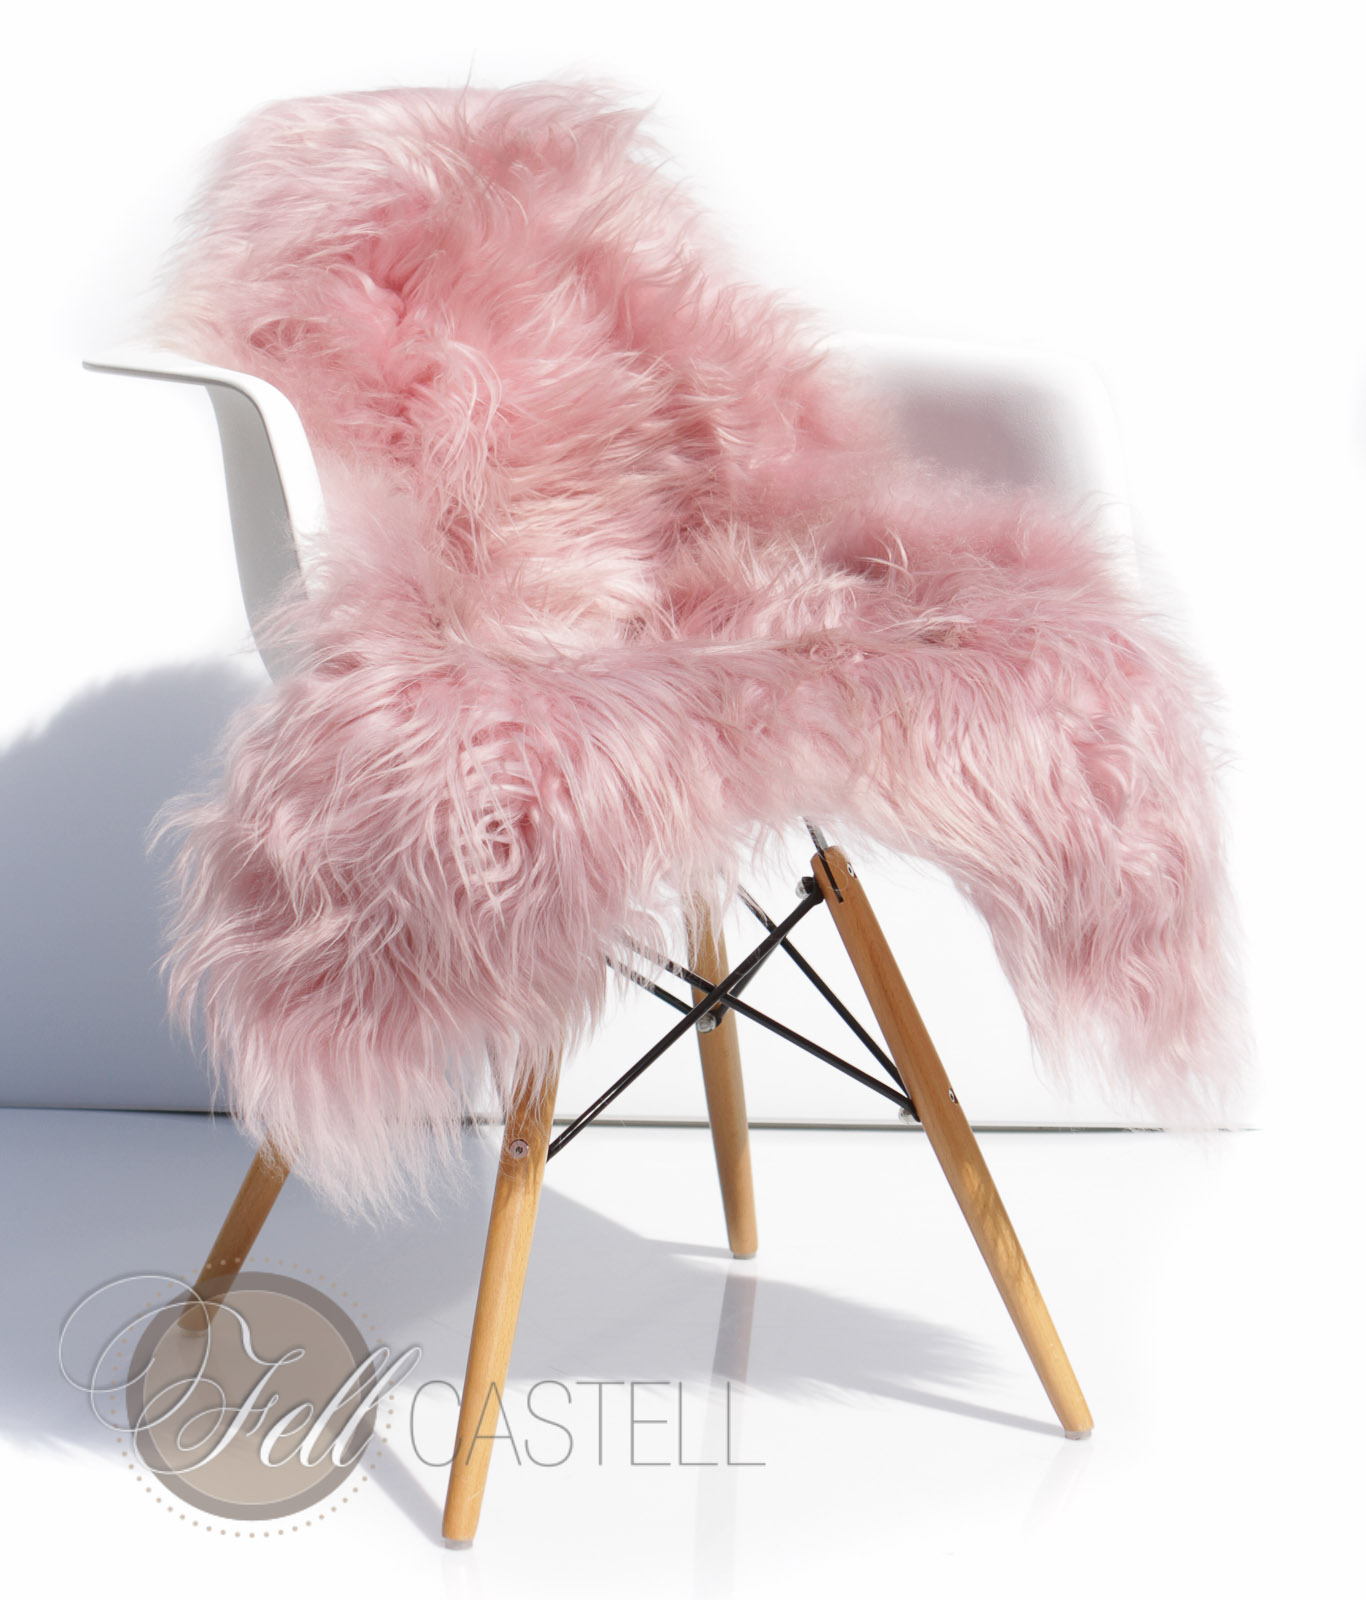 island schaffell pastell rosa puder rosa quarz rosa lammfell schaffell shop. Black Bedroom Furniture Sets. Home Design Ideas